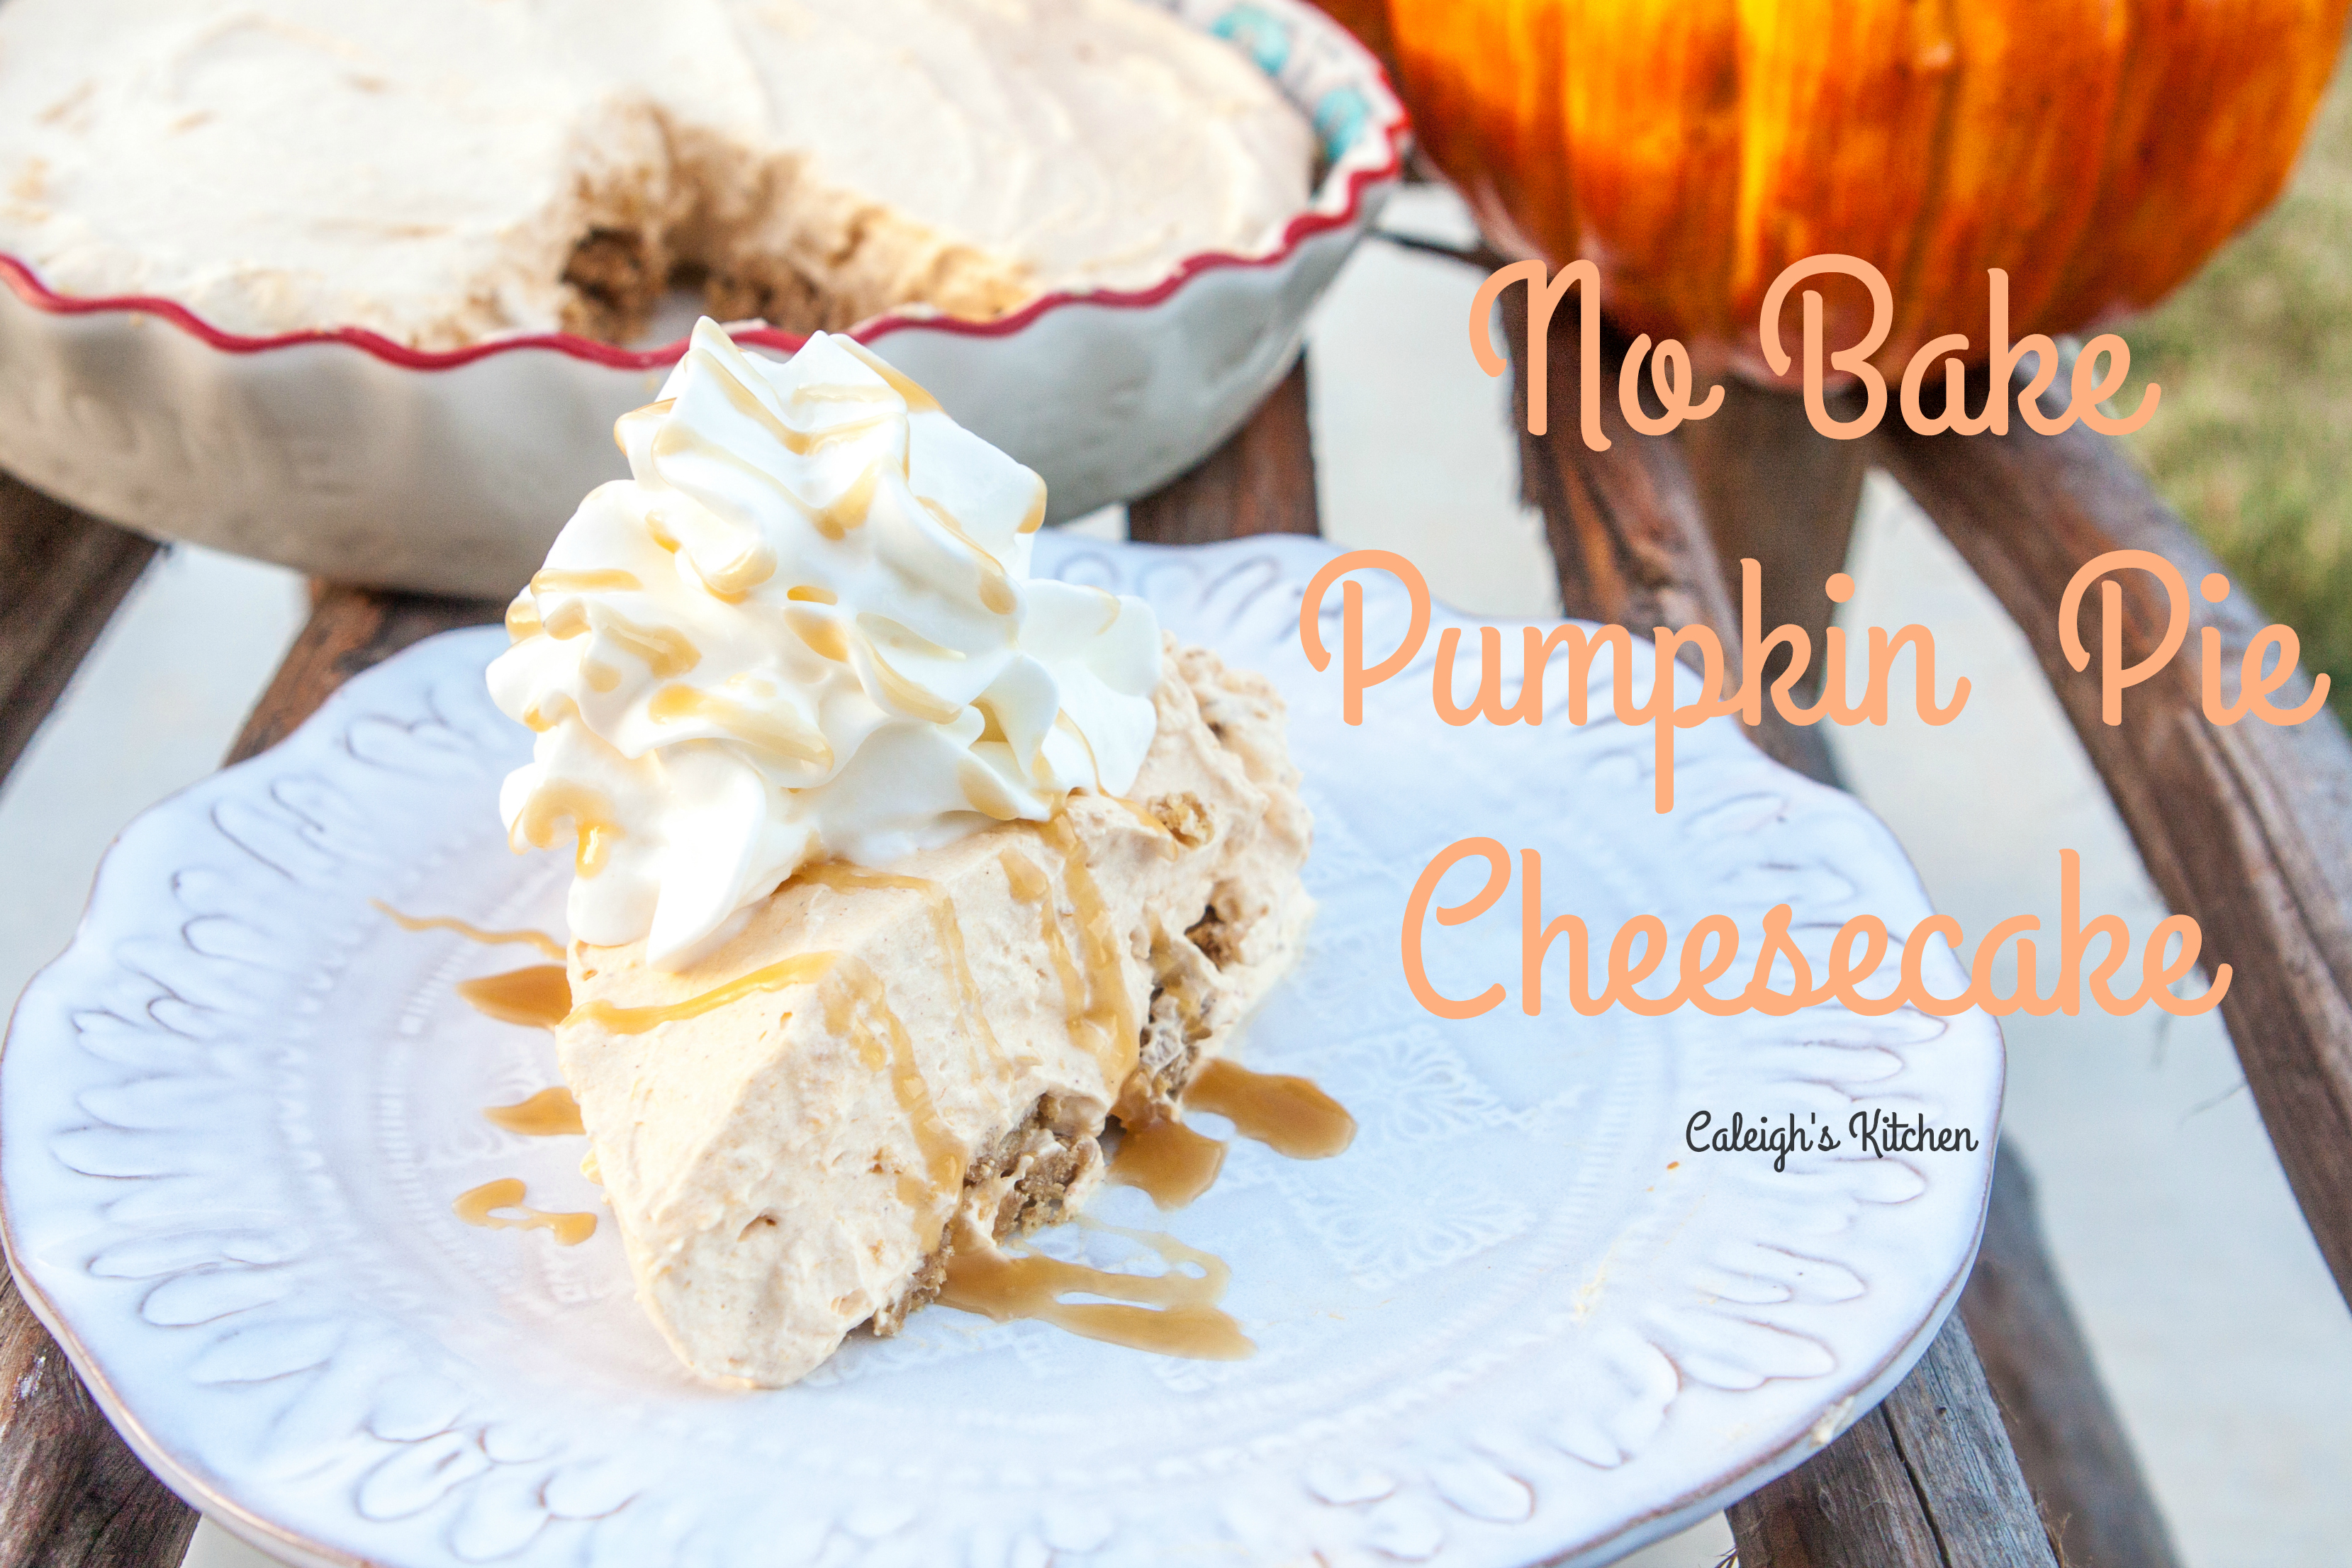 Virtual Baby Shower with No Bake Pumpkin Pie Cheesecake